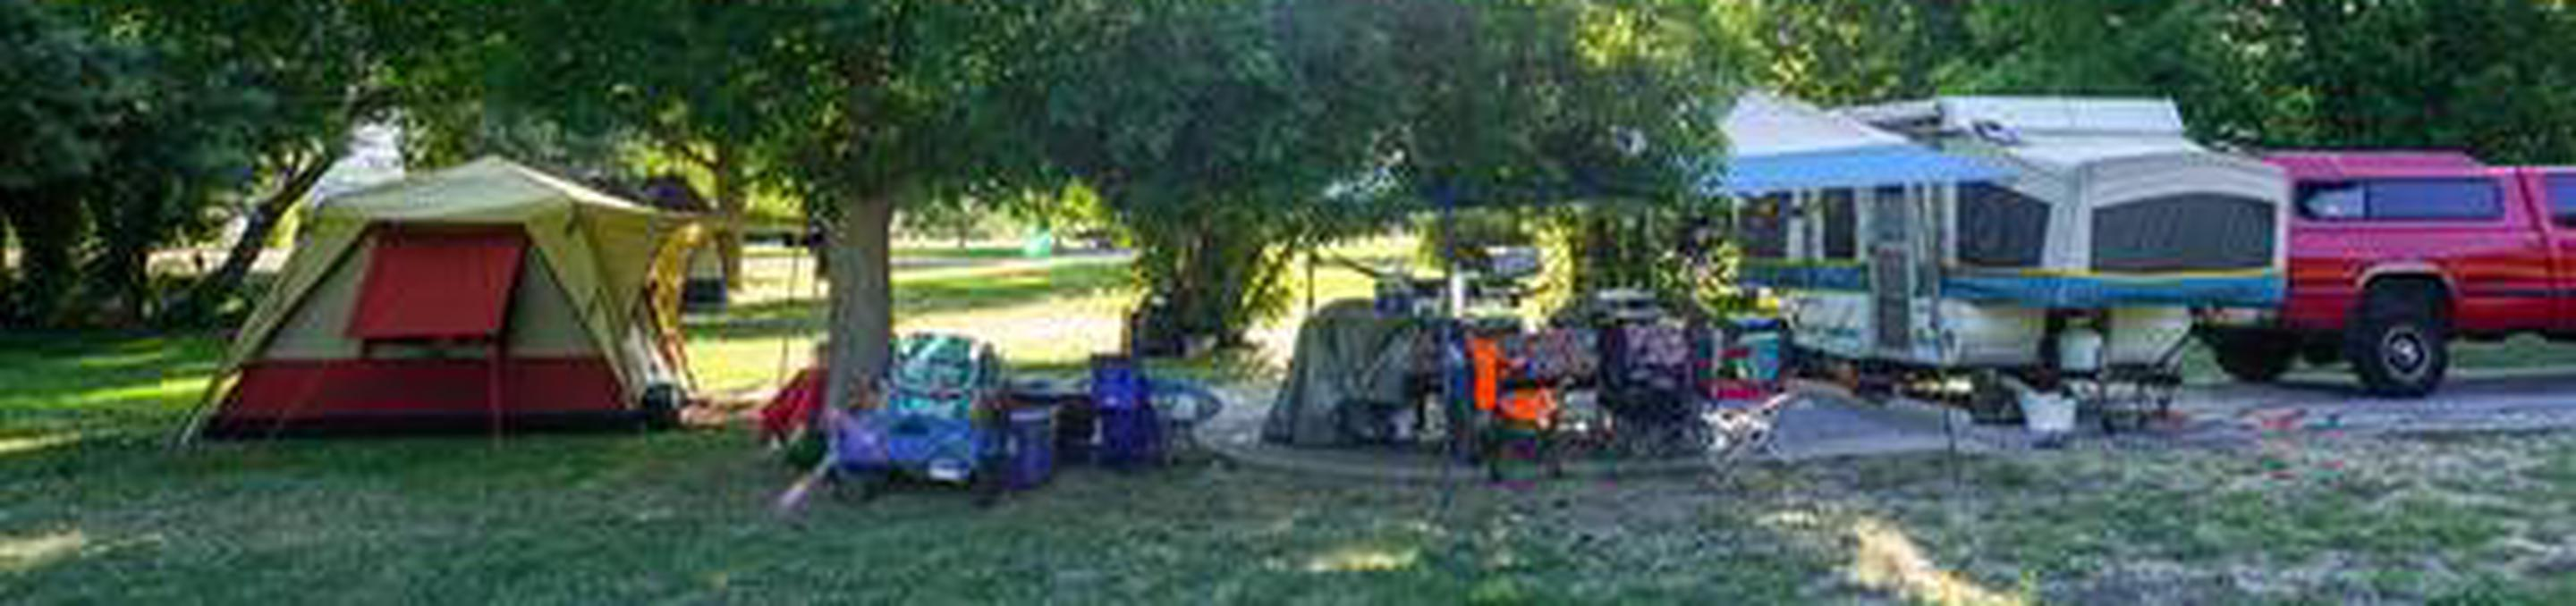 Anderson Cove Campground A-011